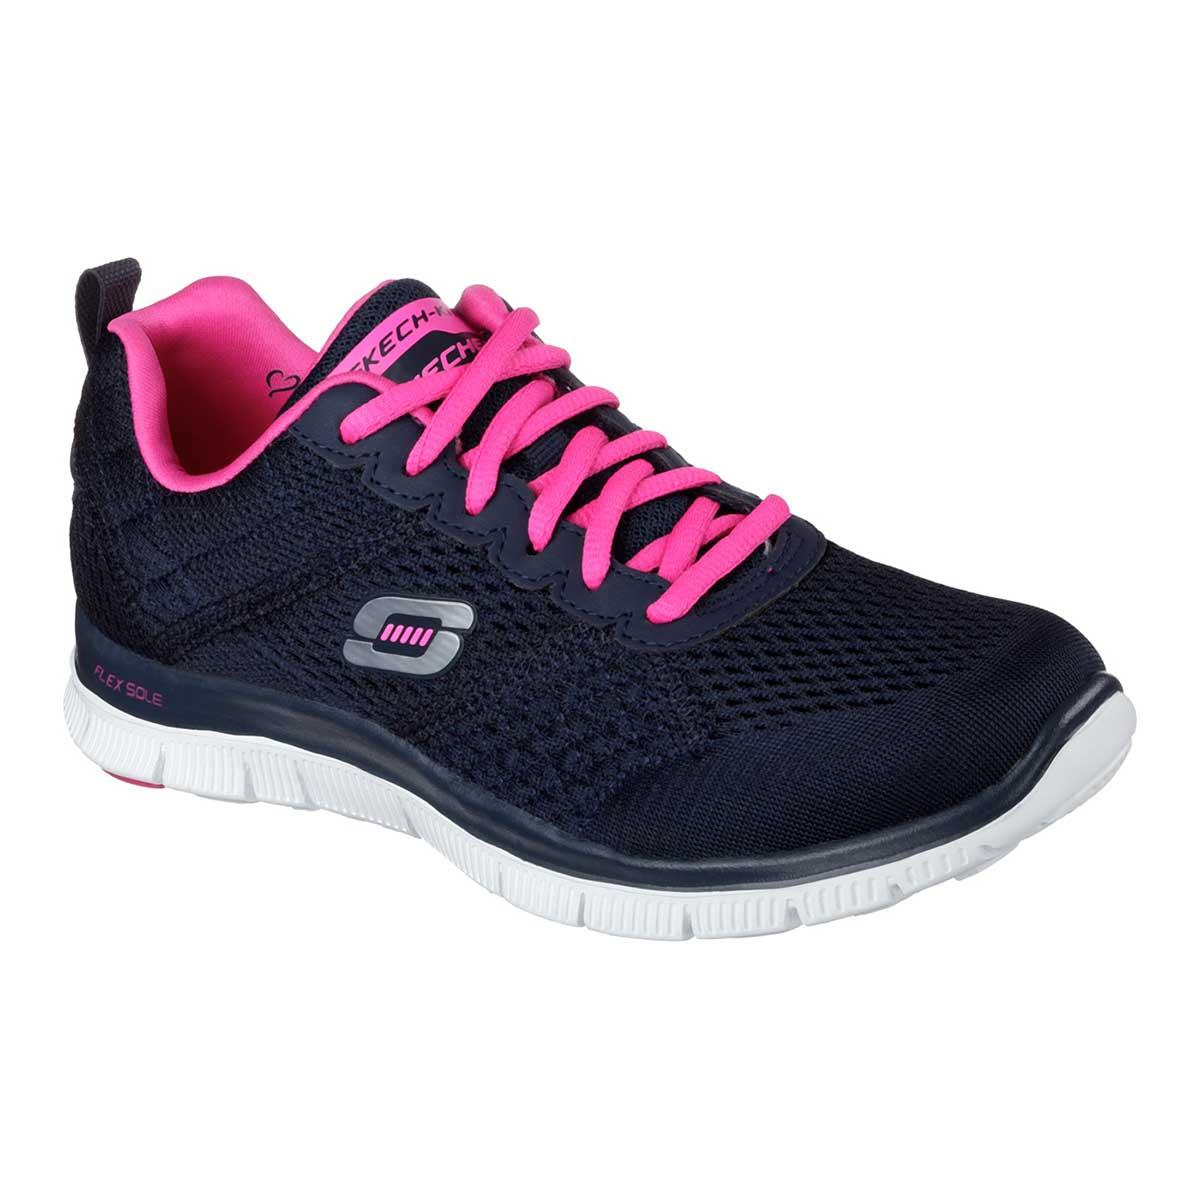 Buy Skechers Flex Appeal Womens Running Shoes Online India